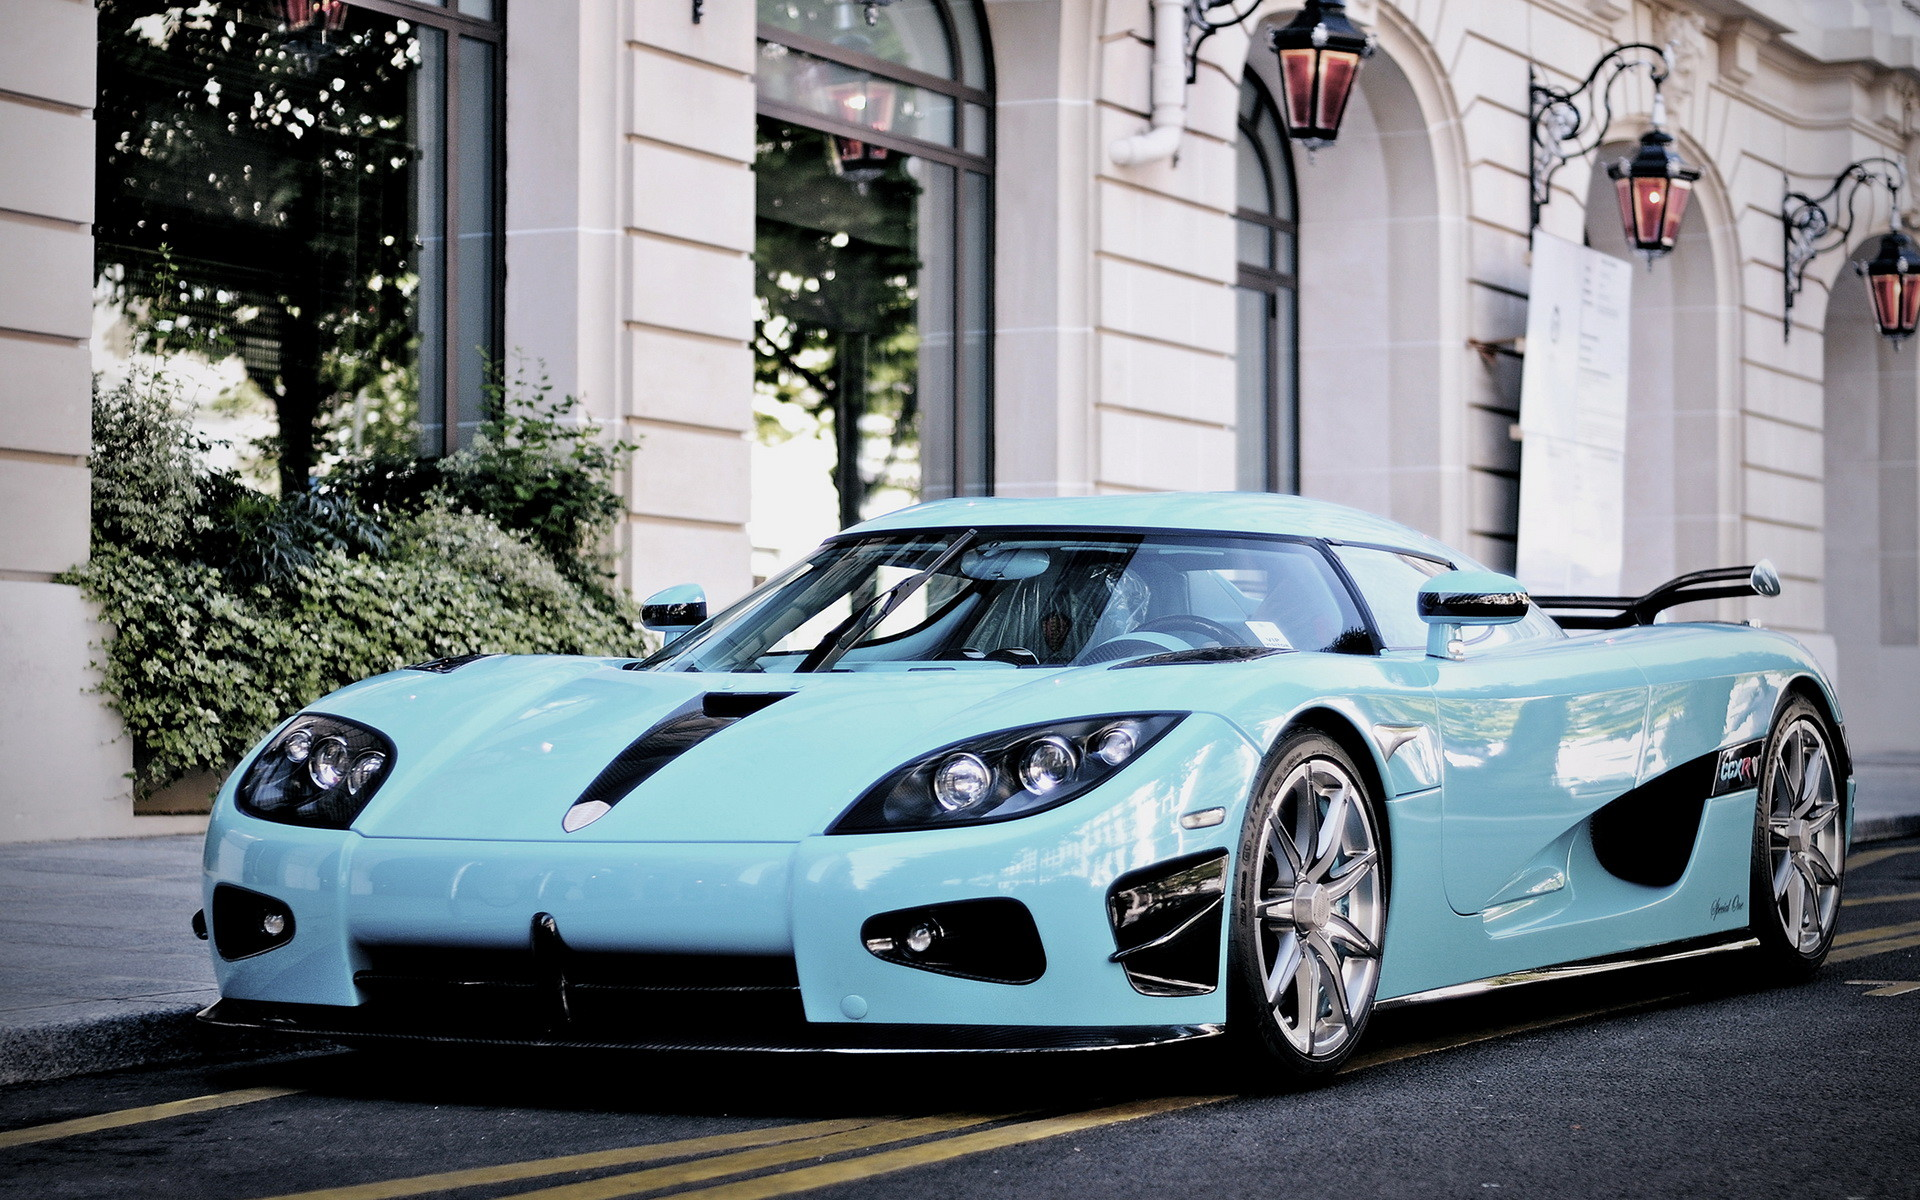 1920x1200 Vehicles - Koenigsegg Agera Koenigsegg Vehicle Koenigsegg Agera R Sport Car  Car Blue Car Wallpaper